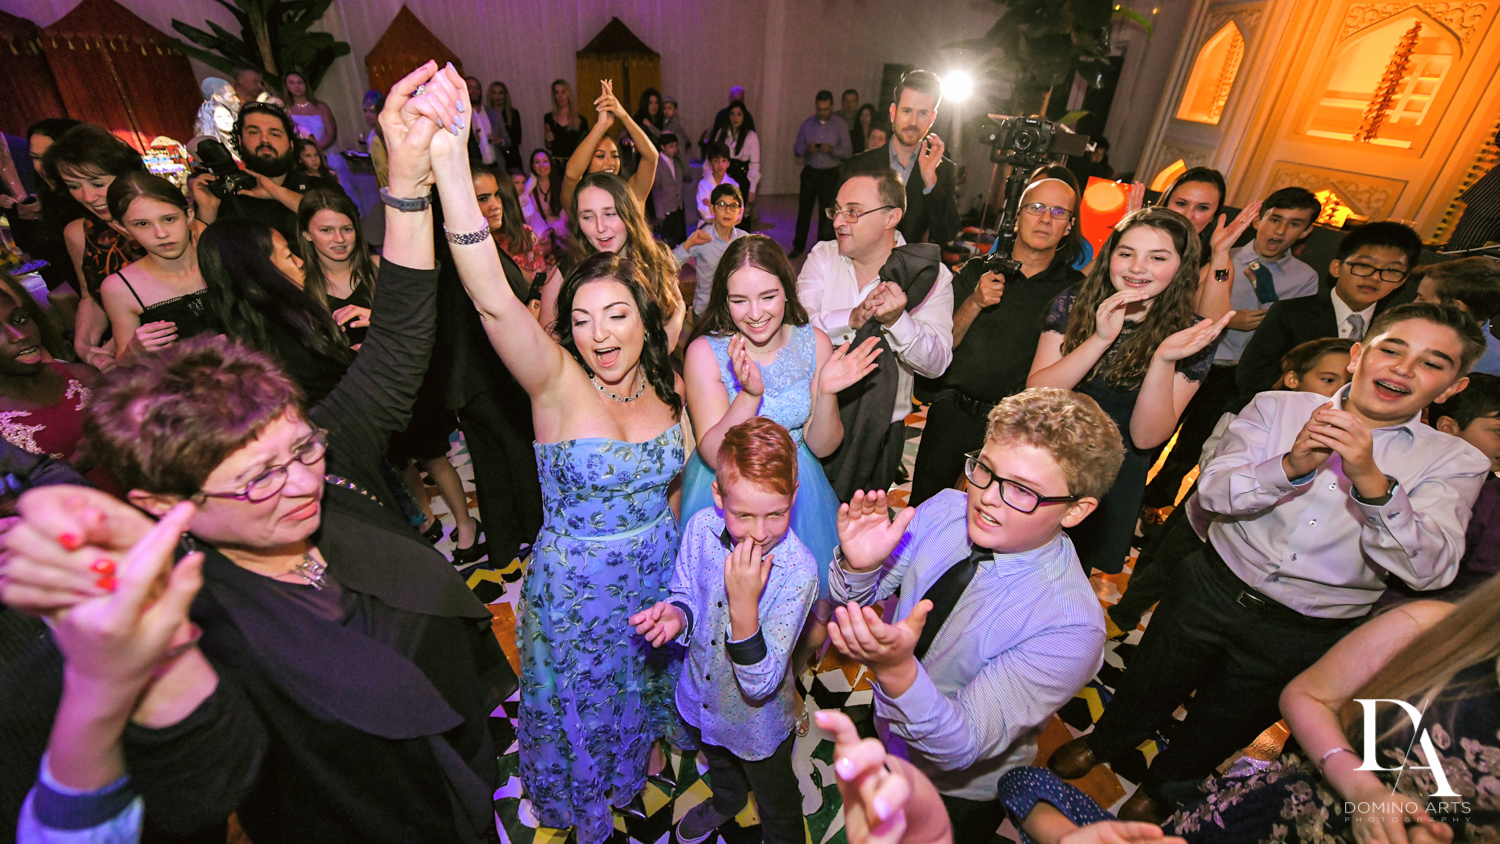 hora time at Exotic Moroccan BNai Mitzvah at Lavan by Domino Arts Photography